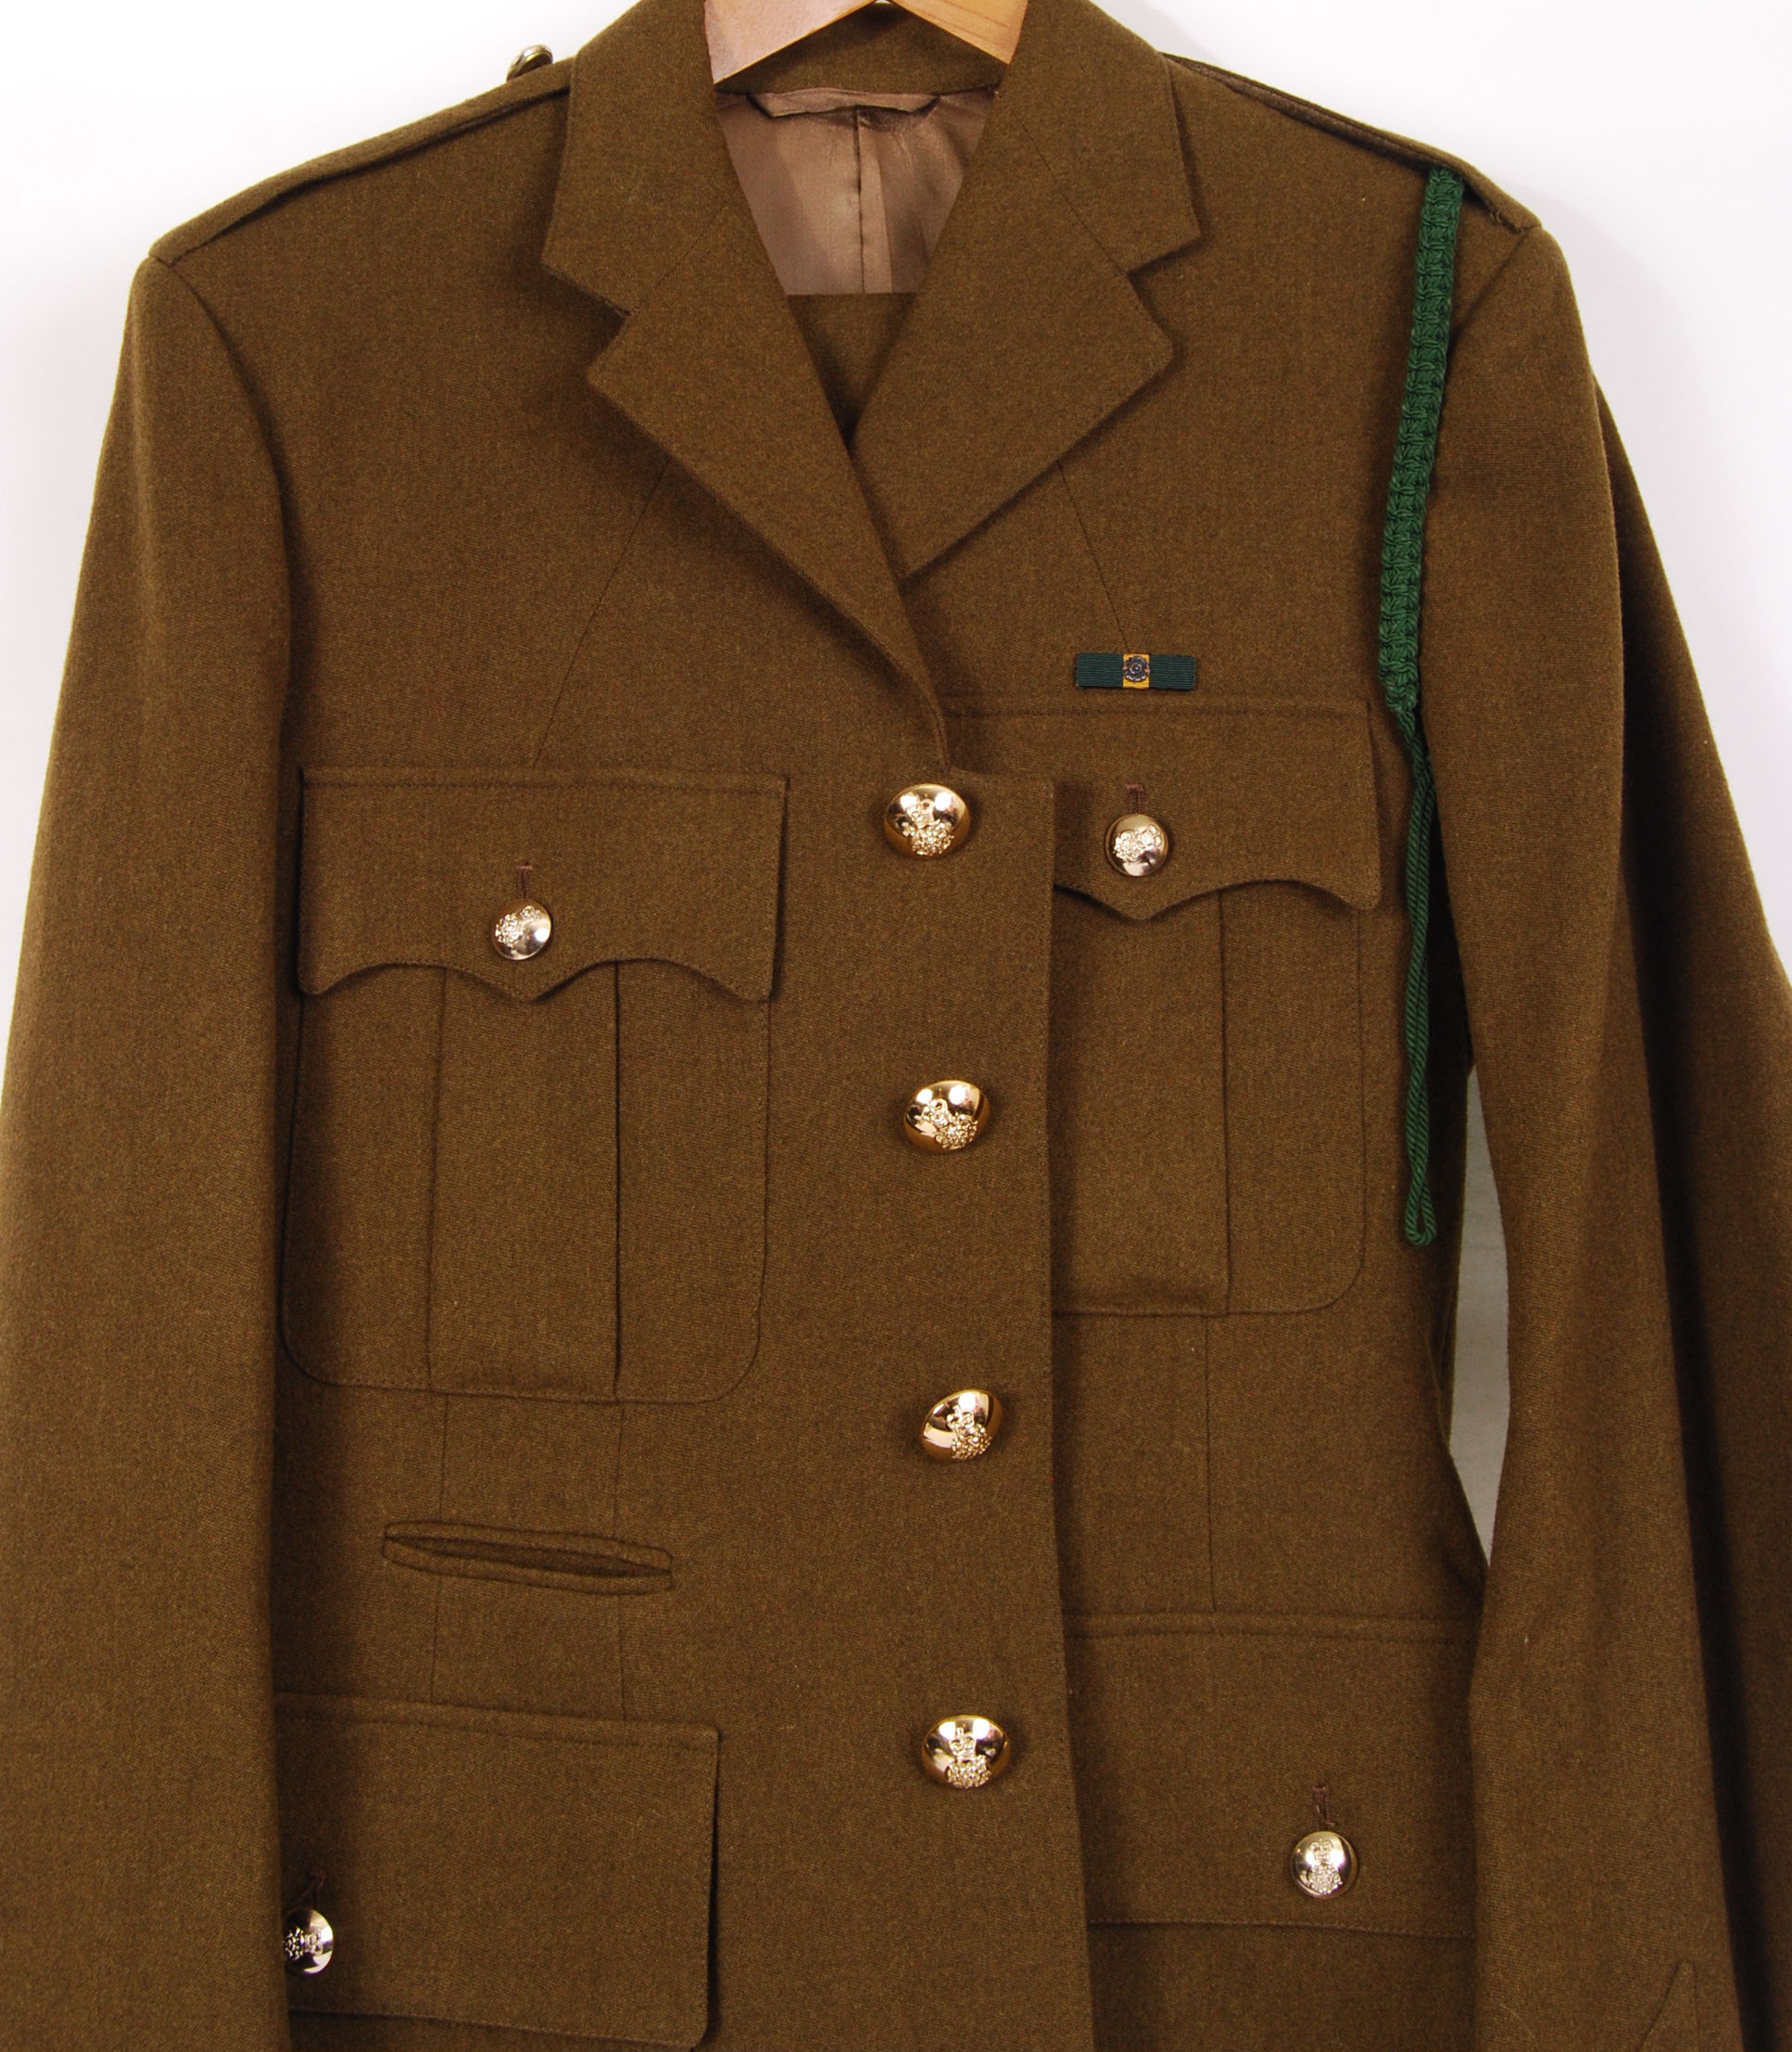 Lot 333 - MILITARY UNIFORM